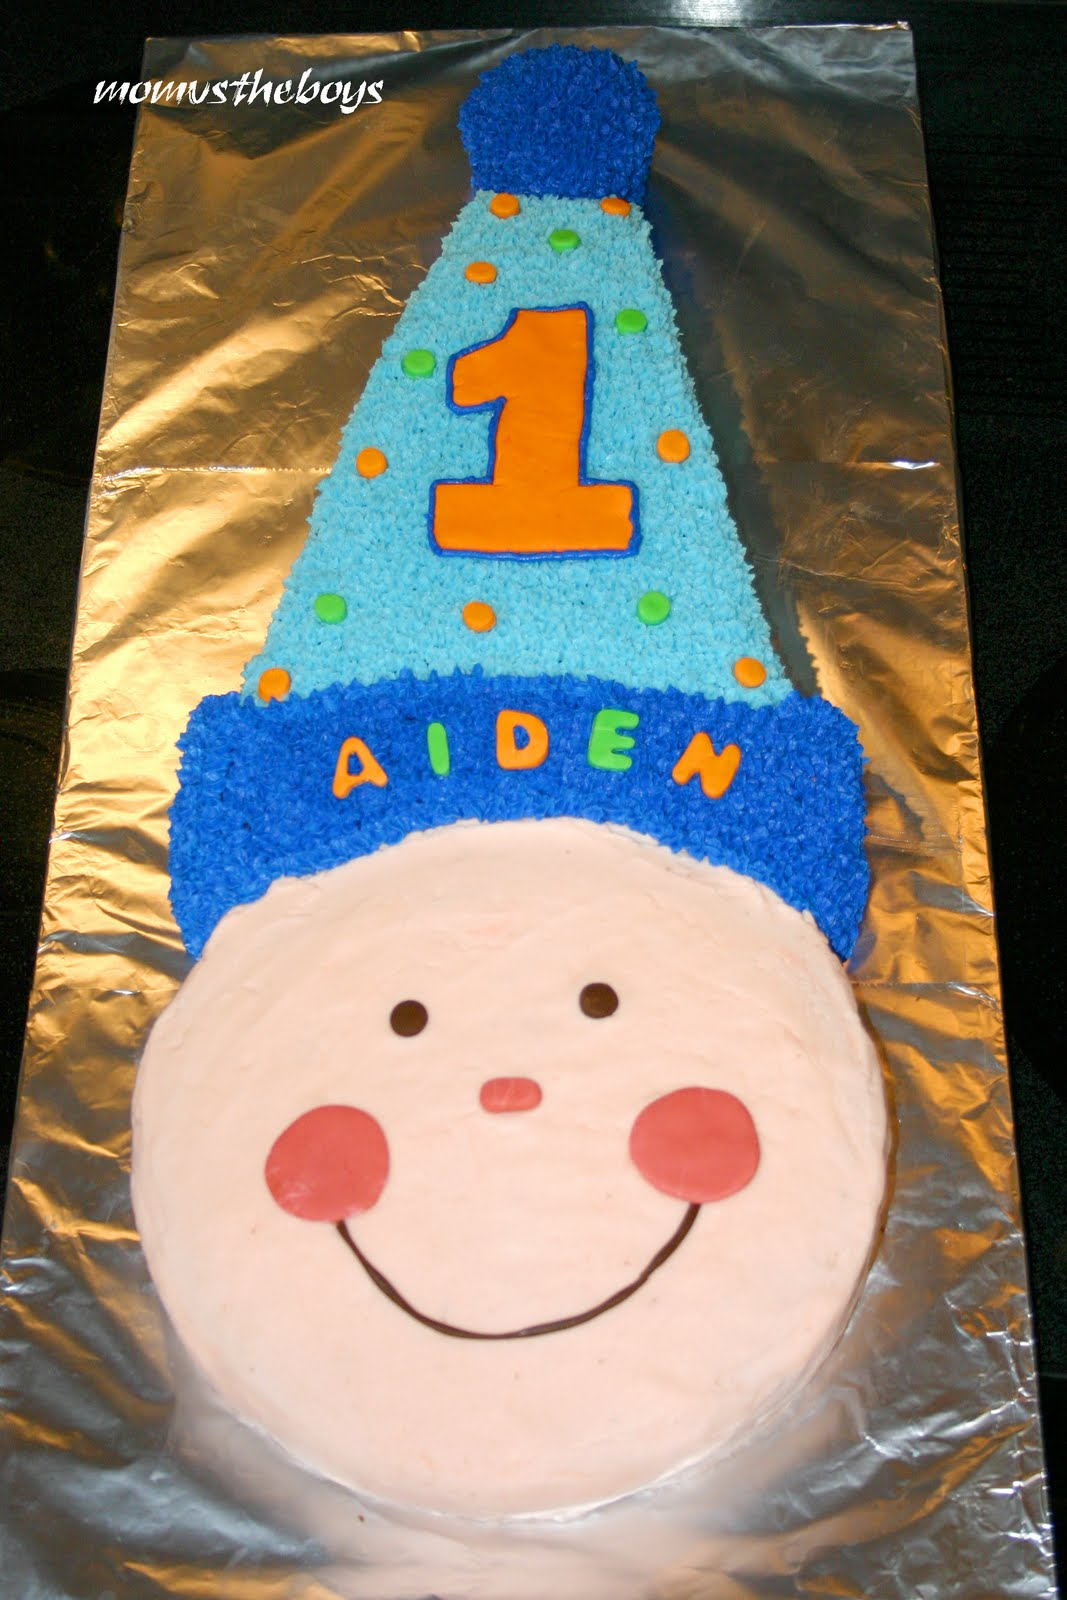 Birthday Cake Images For Little Boy : Tasty Tuesday- 1st Birthday Cake - Mom vs the Boys